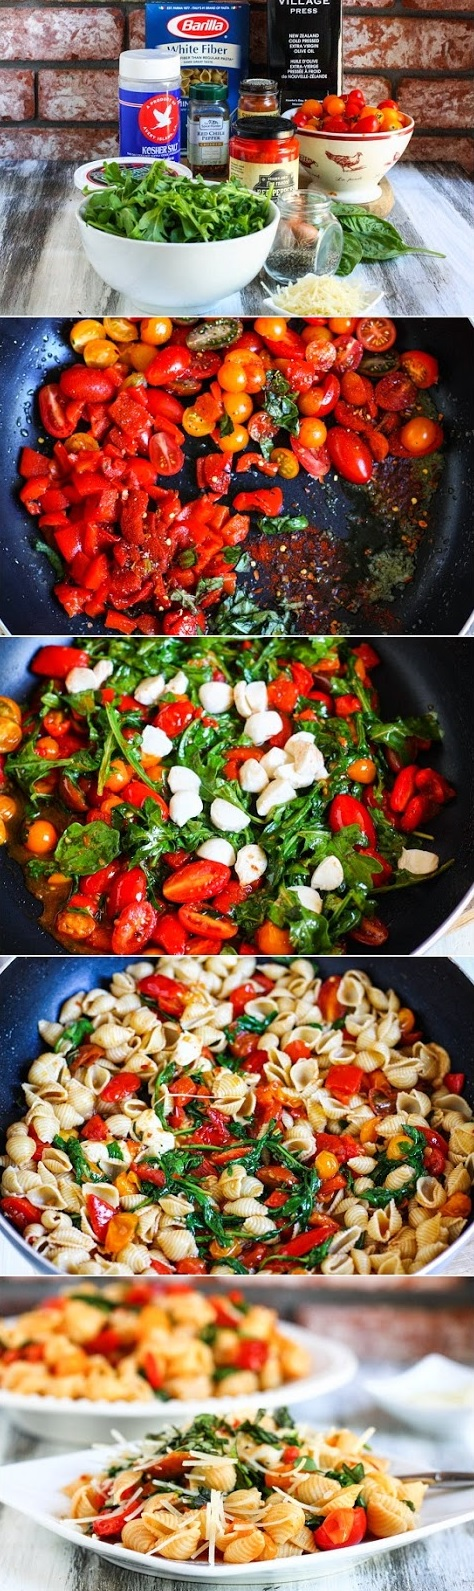 Tomato, Roasted Pepper and Arugula Pasta